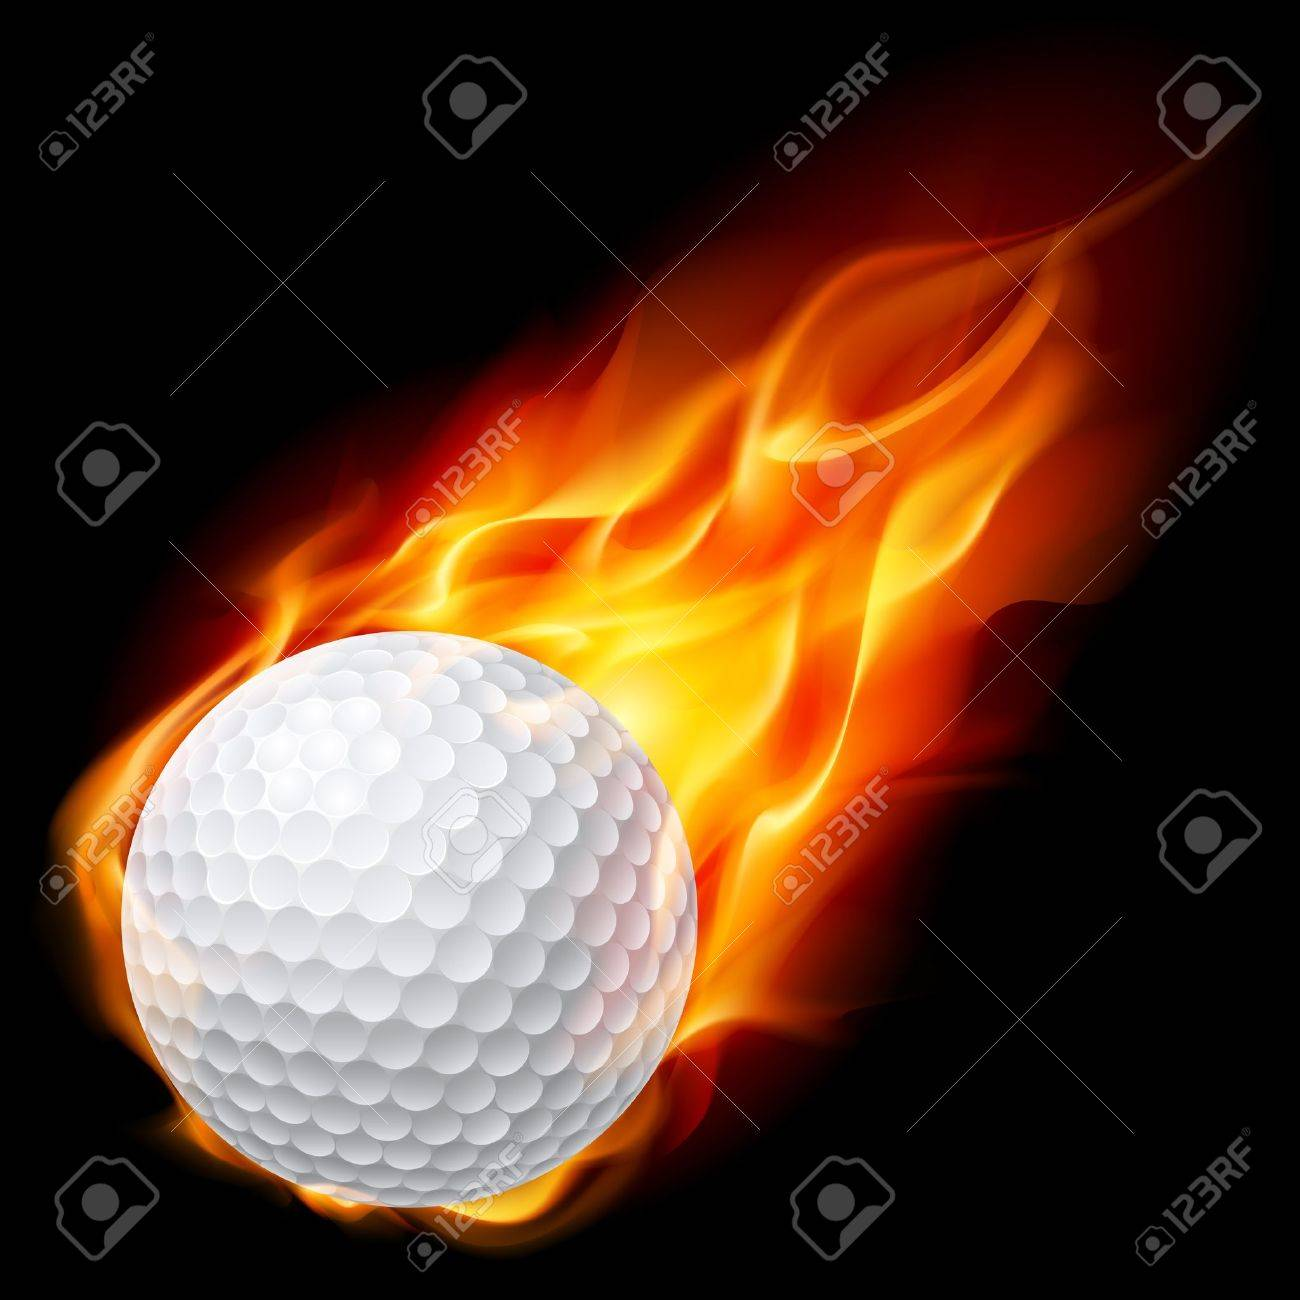 Golf Ball On Fire Illustration On Black Background Royalty Free Cliparts Vectors And Stock Illustration Image 10620647